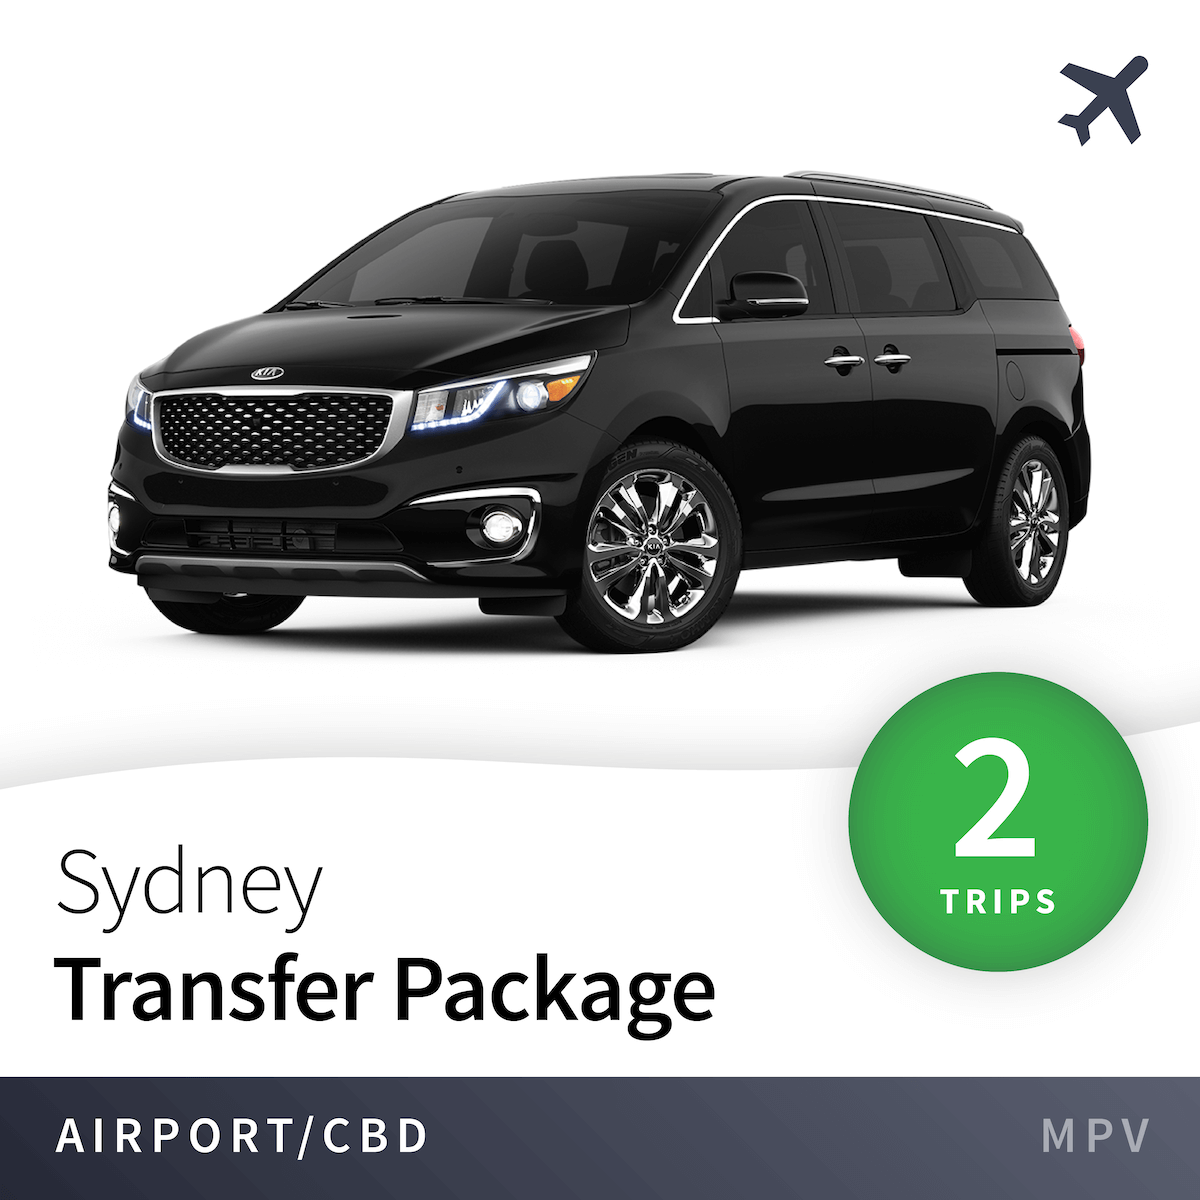 Sydney Airport Transfer Package - MPV (2 Trips) 1